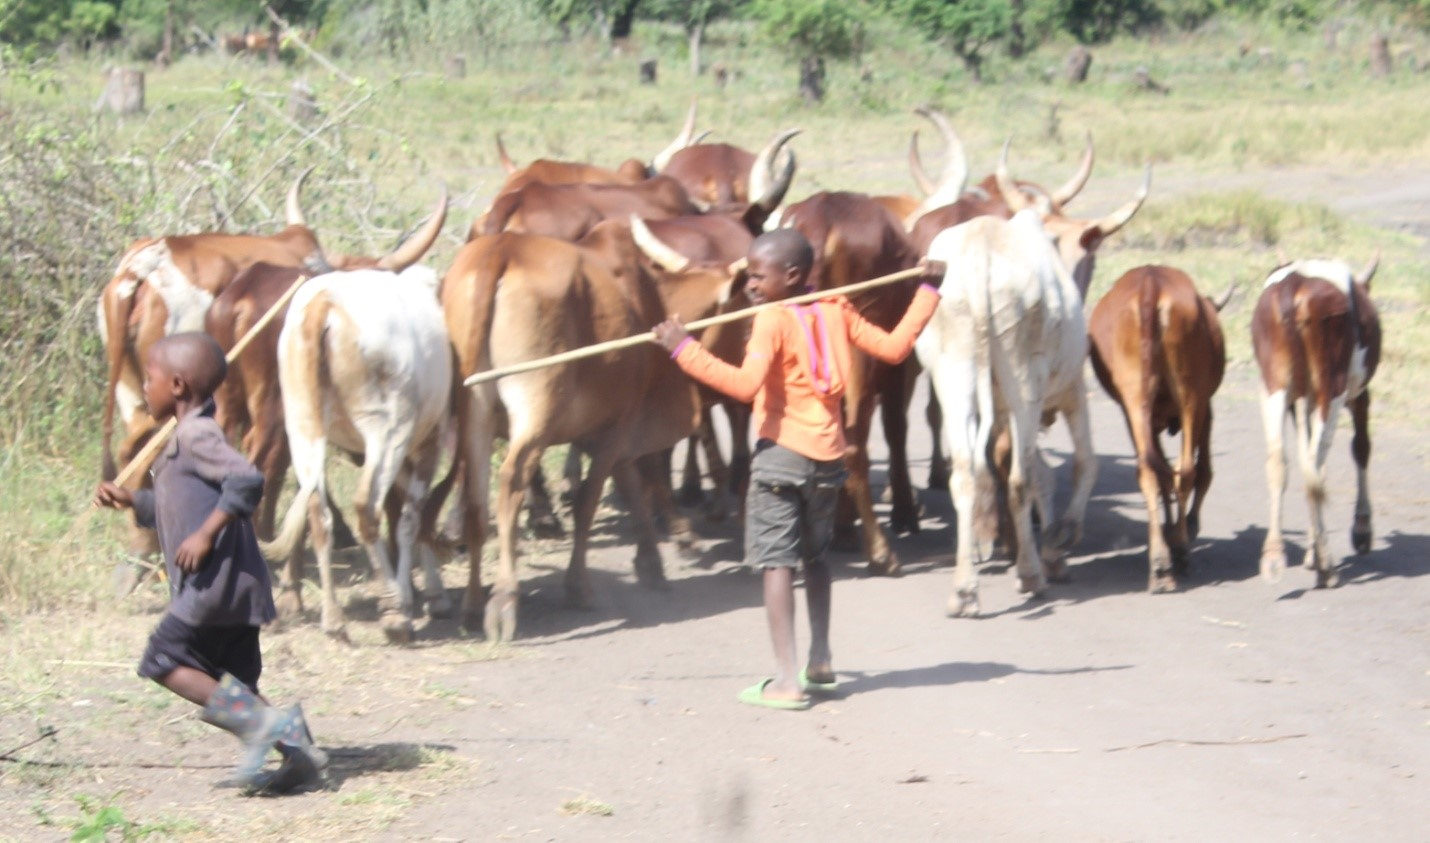 Most children from the agro-pastoral Sukuma communities are livestock grazers, thus discouraged from schools and encourage to inherit lion hunting traditions.